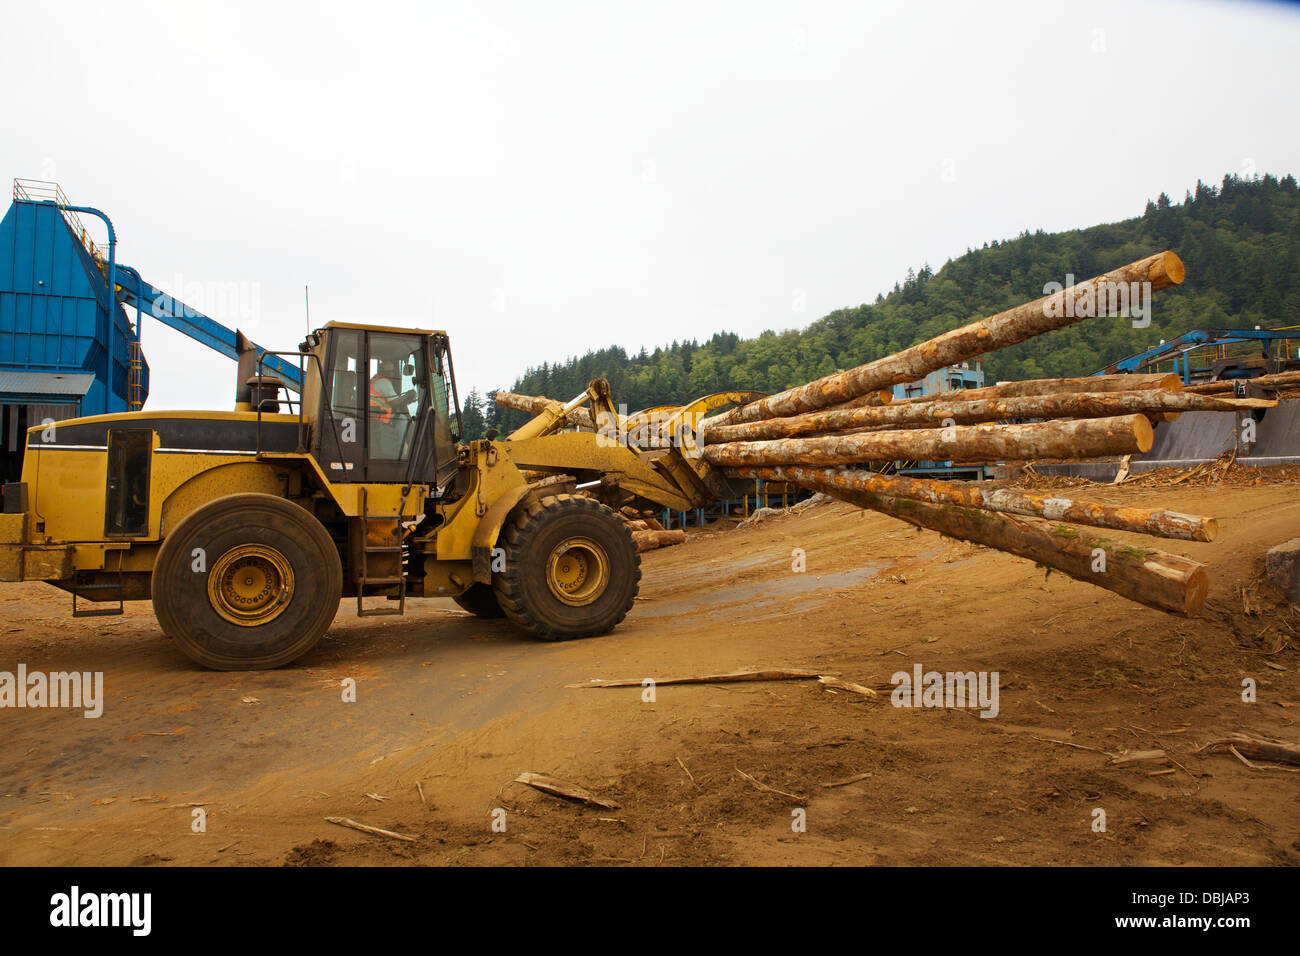 Logging forklift claw moving timber - Stock Image